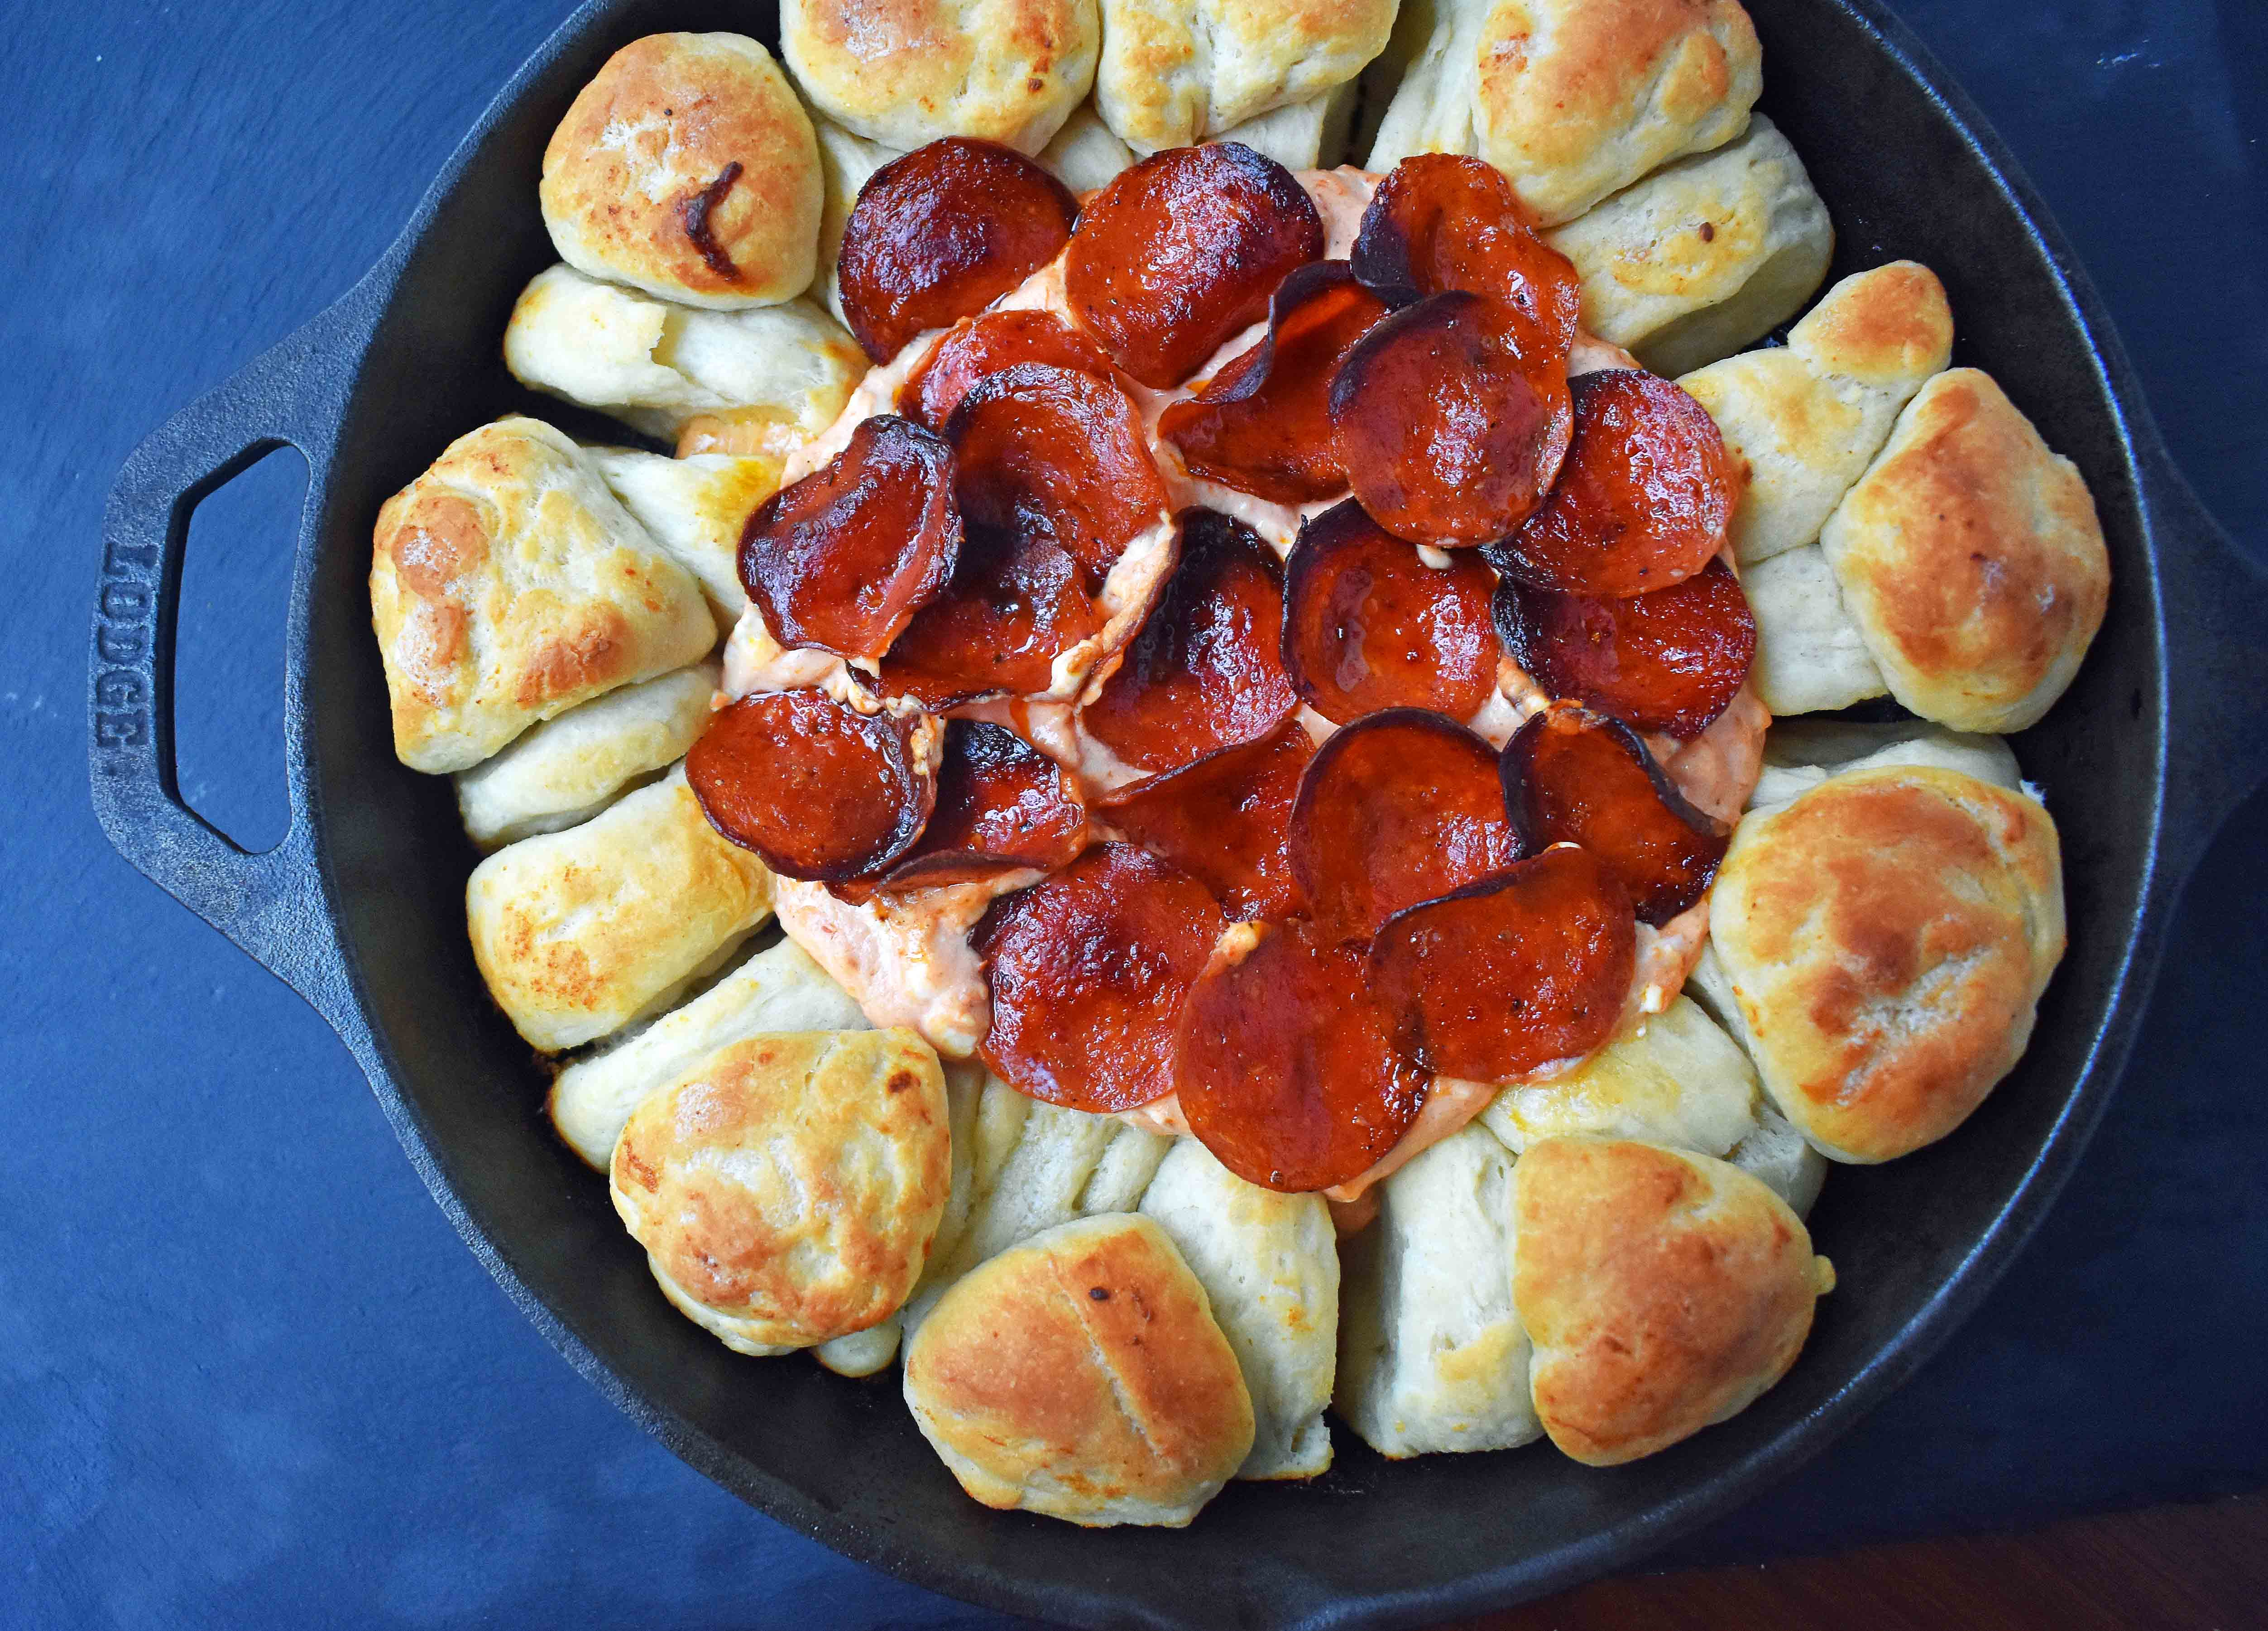 Pepperoni Pizza Dip with Pizza Crust Dippers by Modern Honey. Creamy pizza dip topped with crispy pepperoni and baked with garlic butter pizza rolls. All baked in a cast iron skillet. www.modernhoney.com